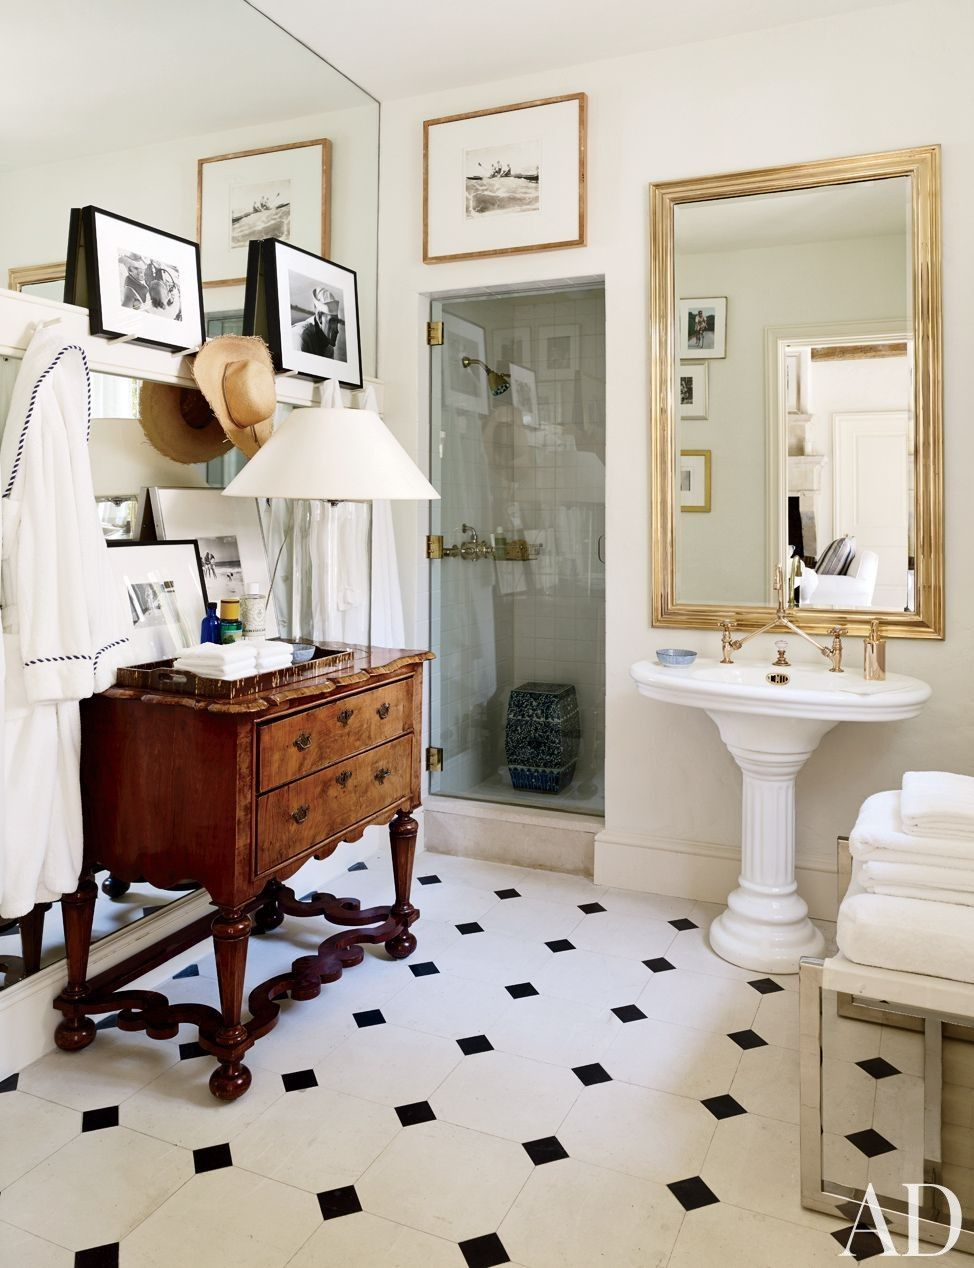 A Vintage French Bistro Mirror Hangs Above The Antique Pedestal Sink In Poolhouse Bath At Ralph Lauren S Bedford New York Estate